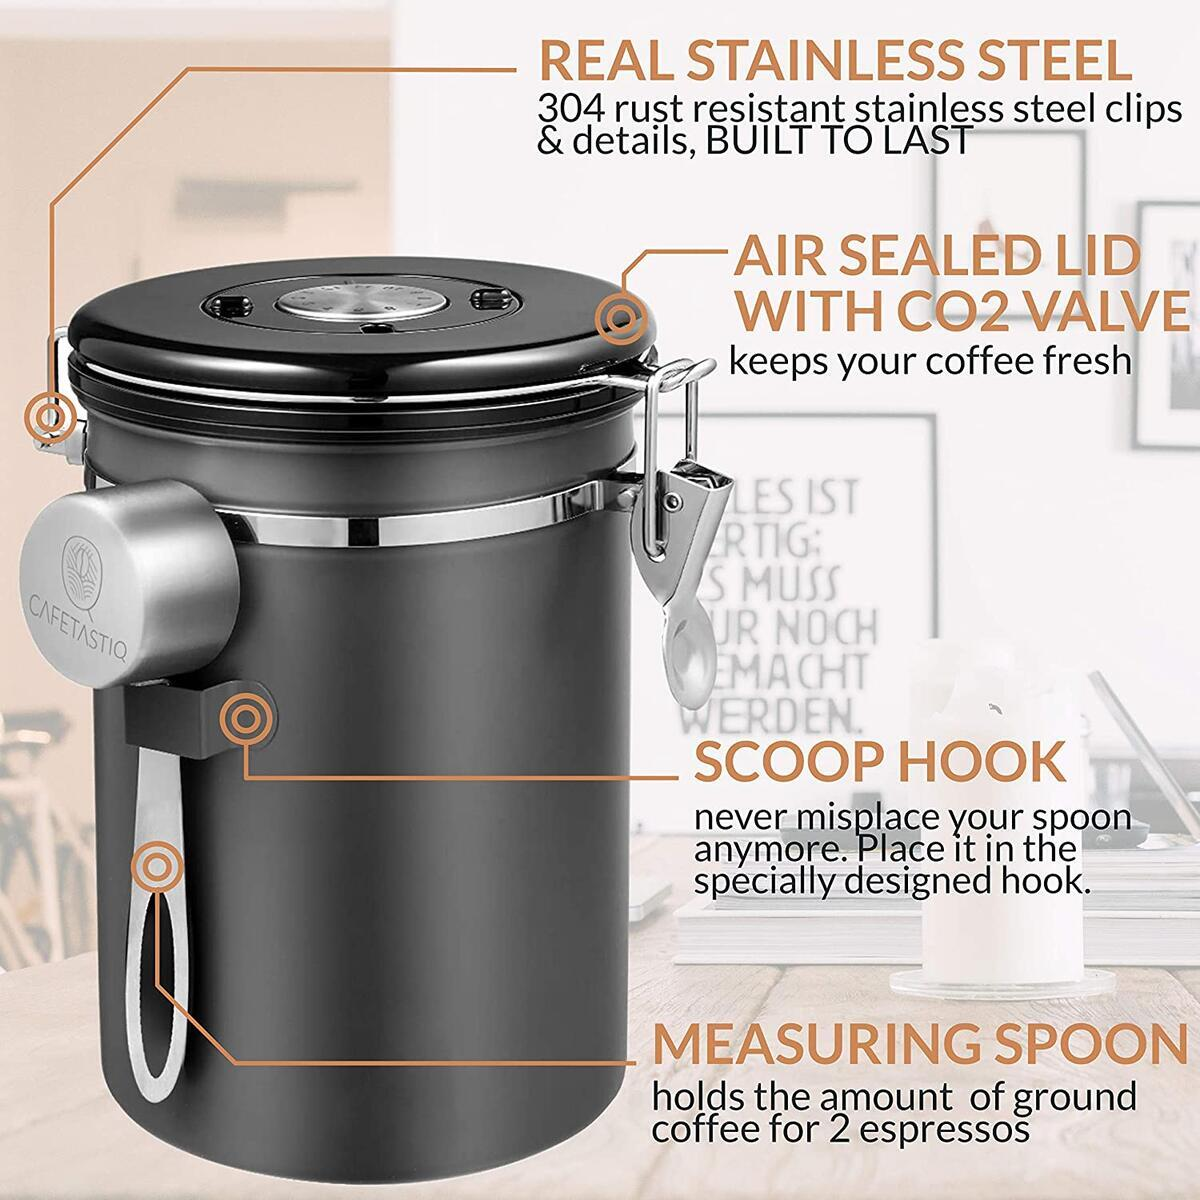 CafetastiQ Coffee Canister - Large 22oz Airtight Coffee Container for Storage with Date Dial and Release Valve - Accessories Scoop (New Designer Grey)